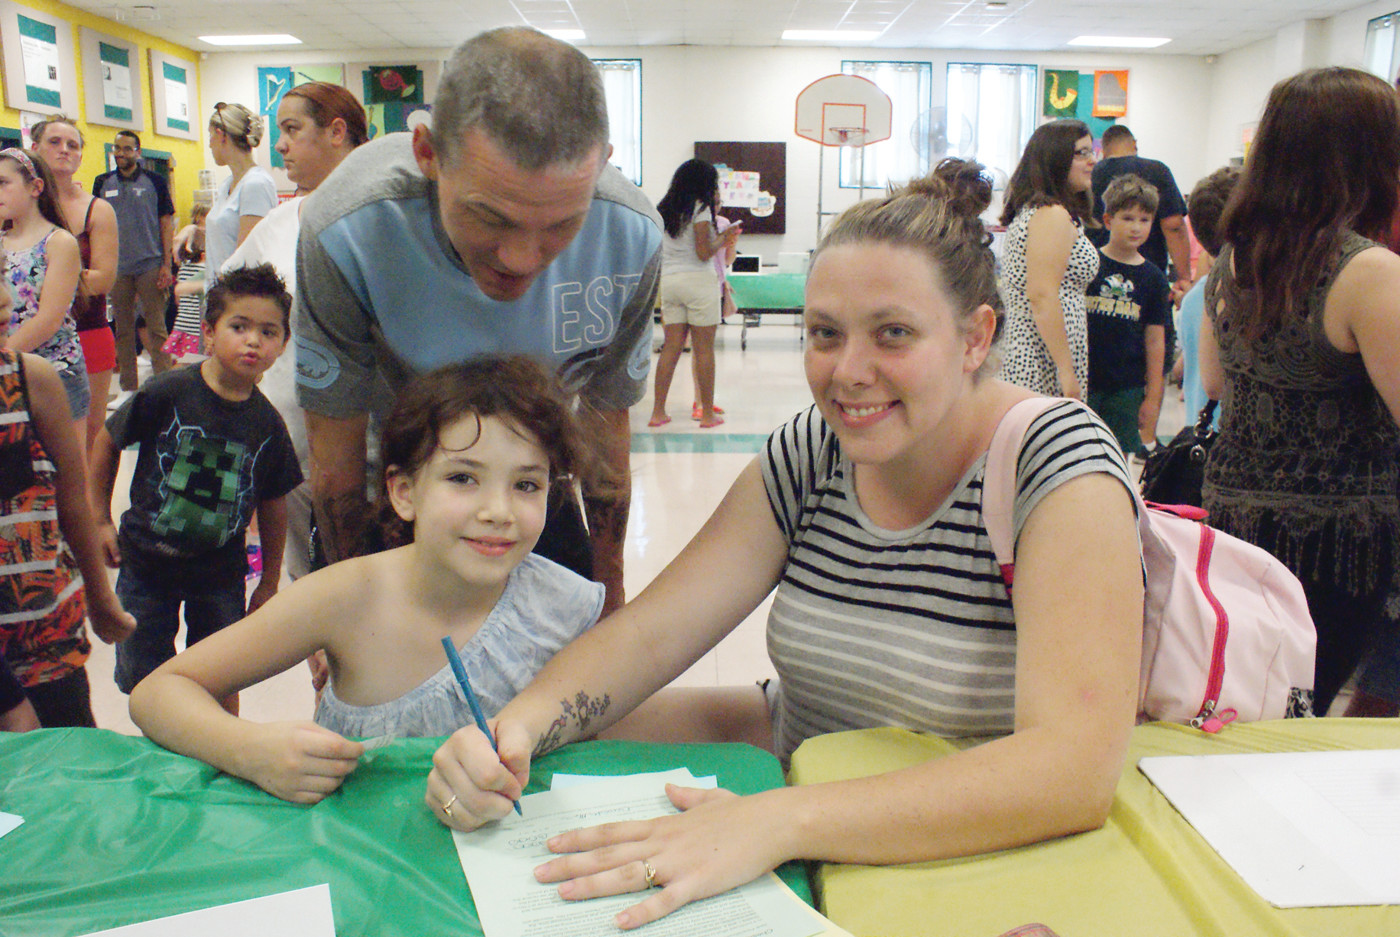 A FAMILY MATTER: Completing some paperwork at the Chester Barrows Elementary School during their Meet & Greet were Kristina, age 8, and her parents Elizabeth and Ray Caplette.